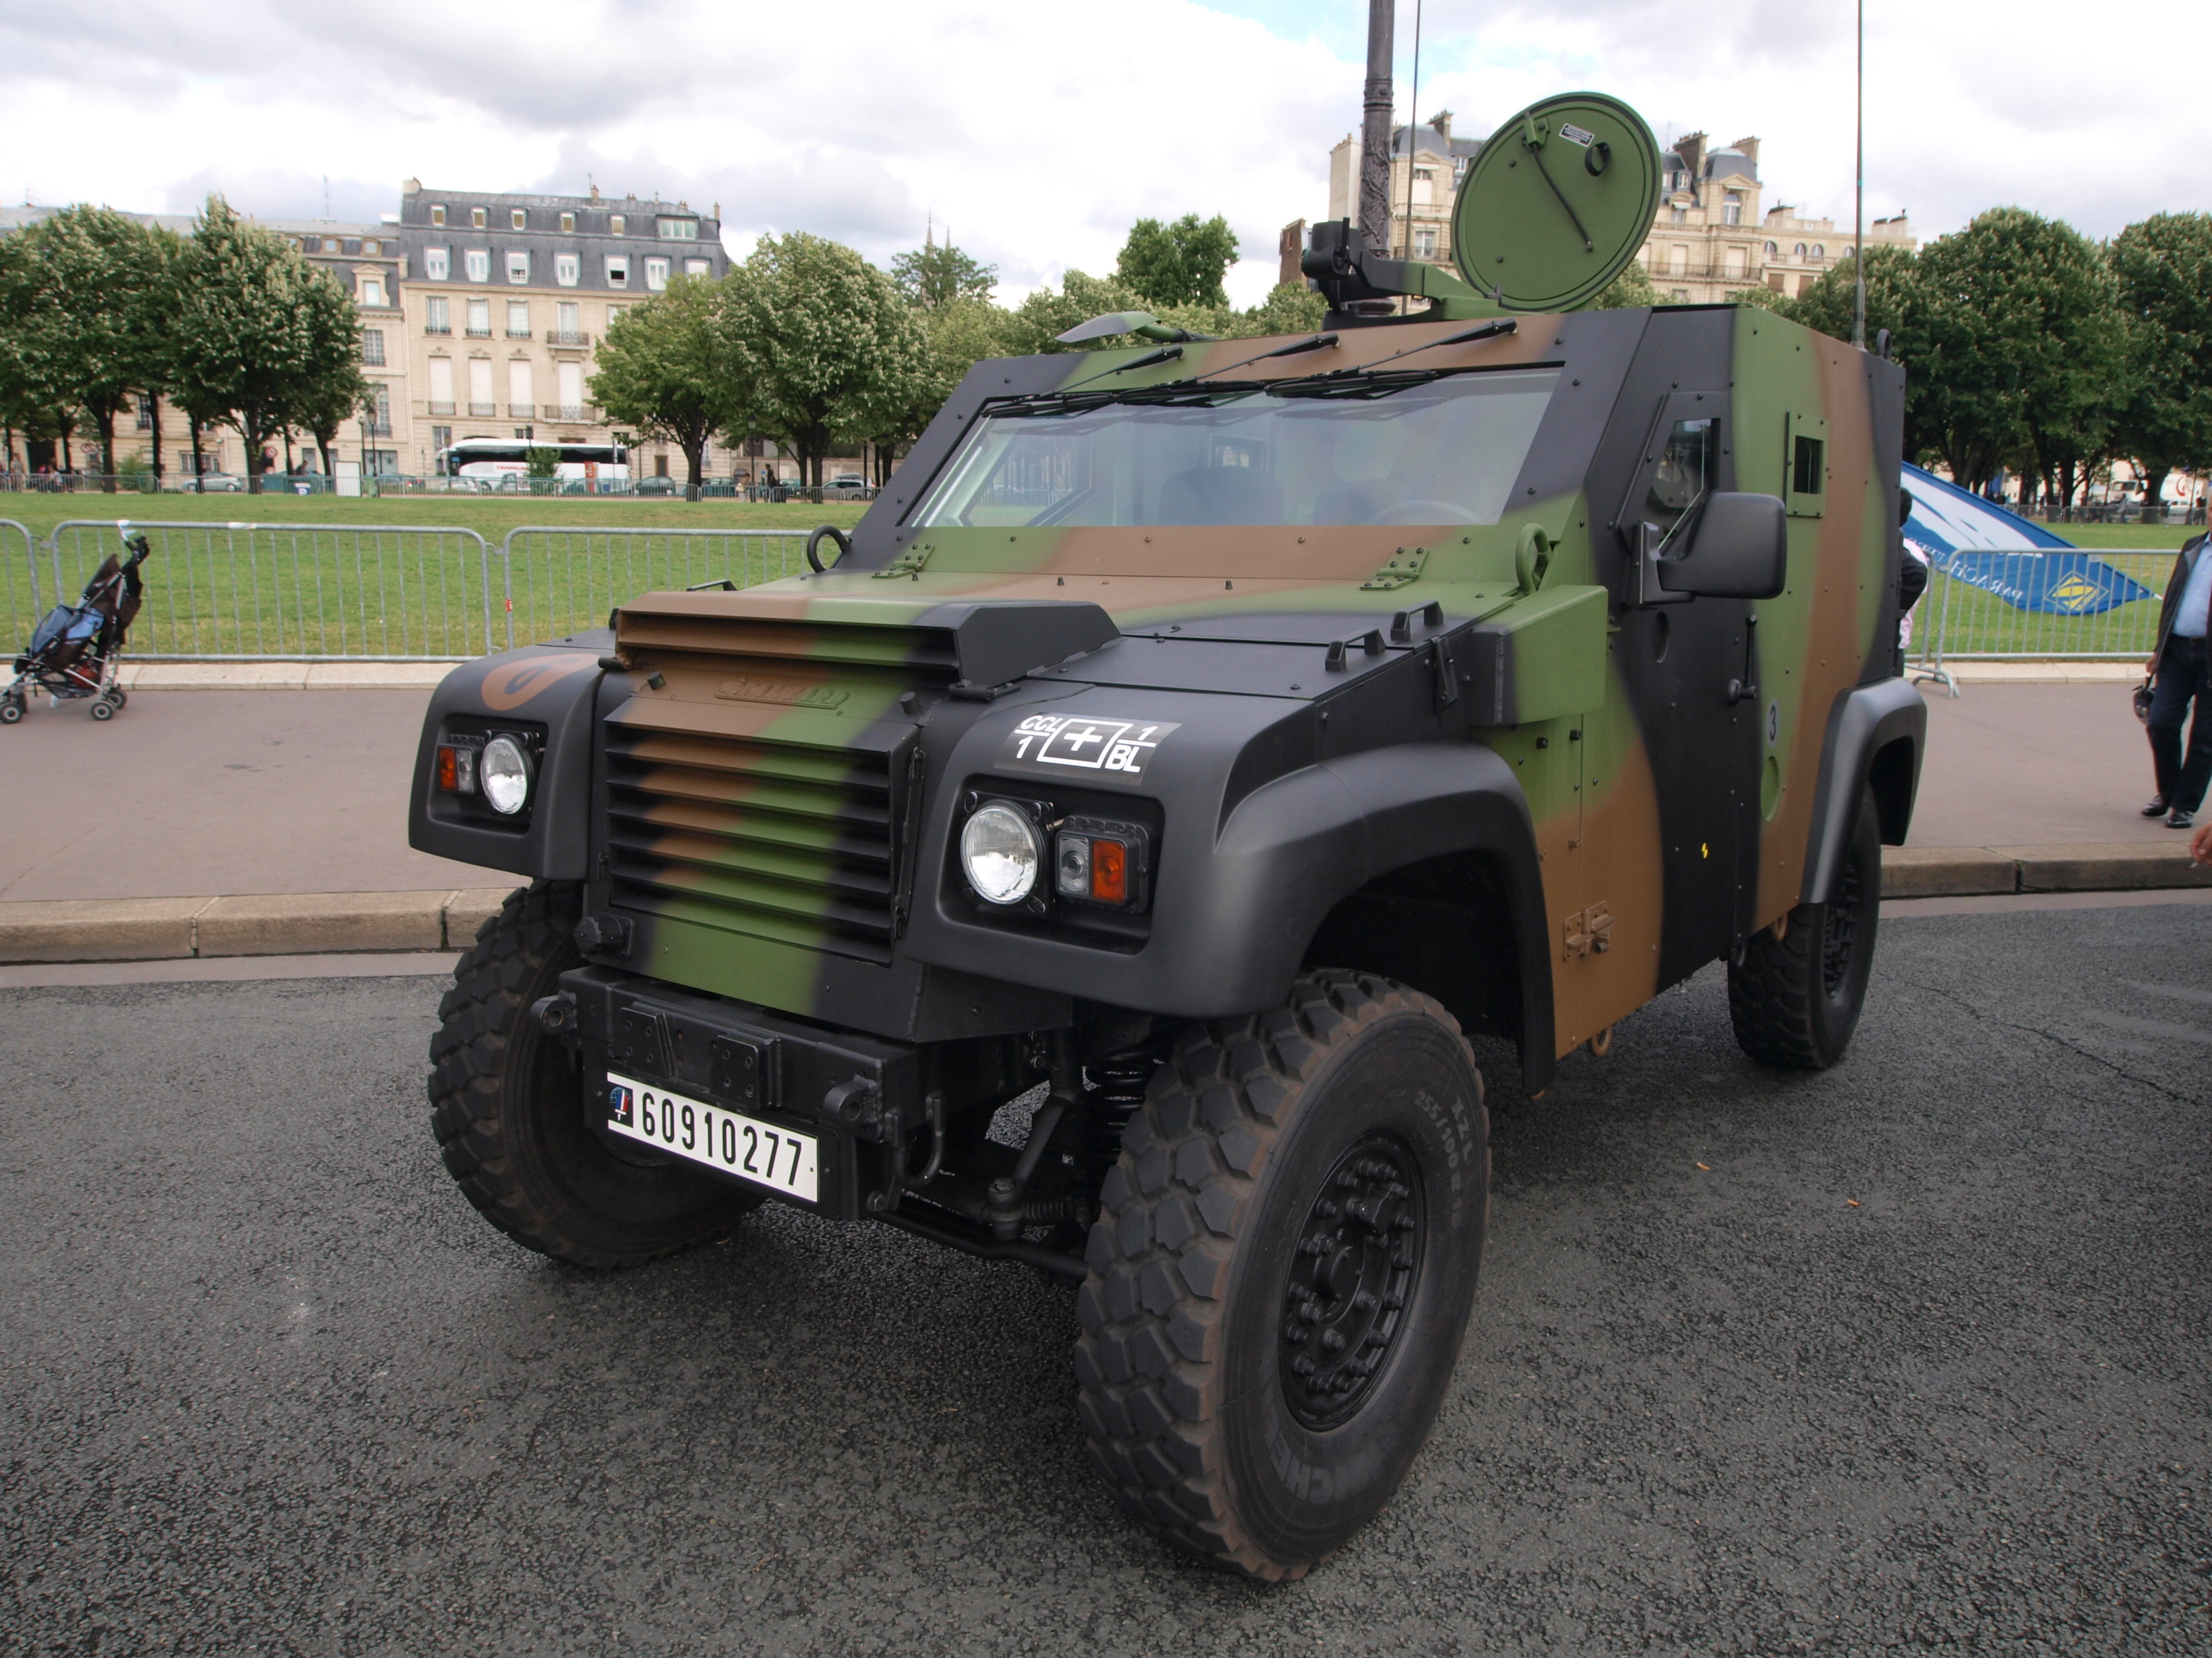 fi ier panhard pvp petit v hicule prot g french army licence registration 39 6091 0277 39 photo. Black Bedroom Furniture Sets. Home Design Ideas